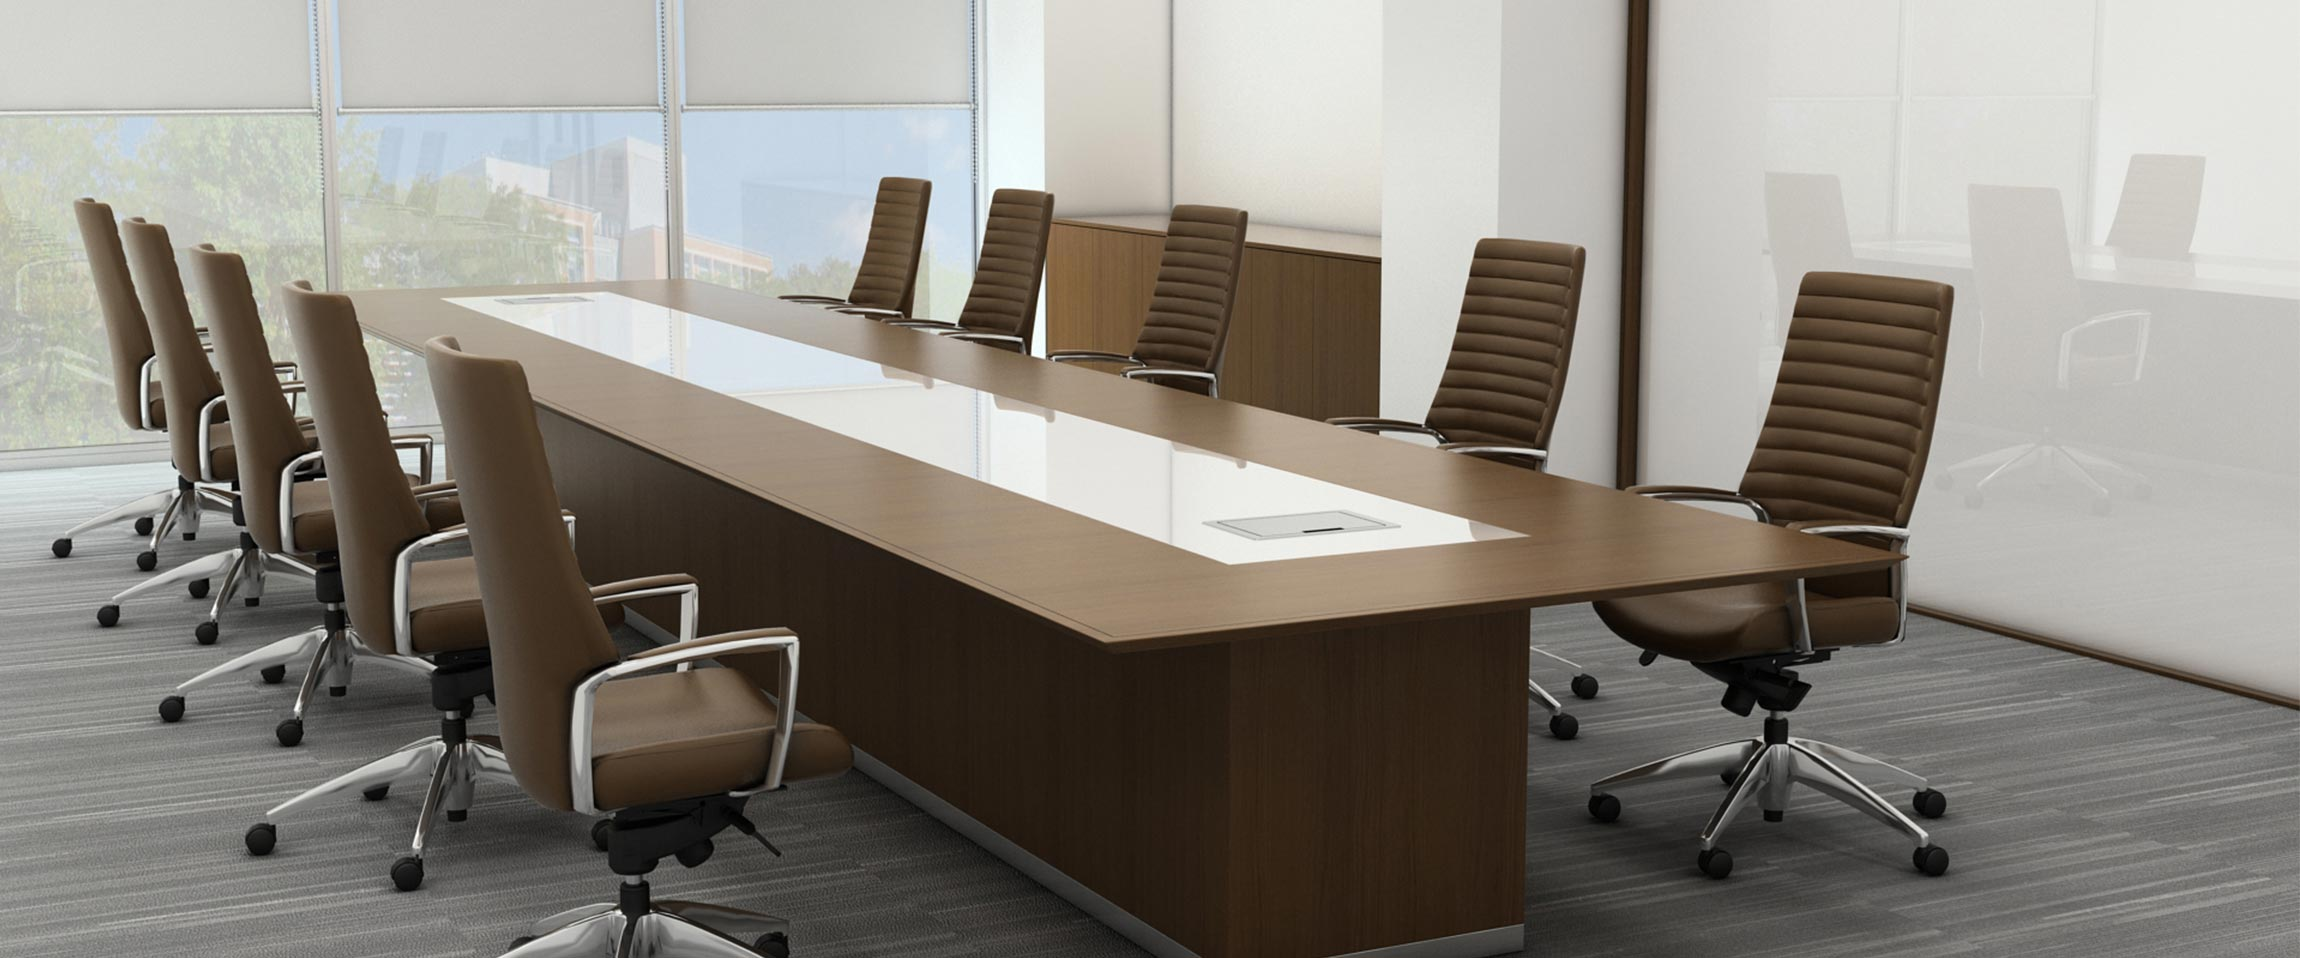 Conference Table Designs 13